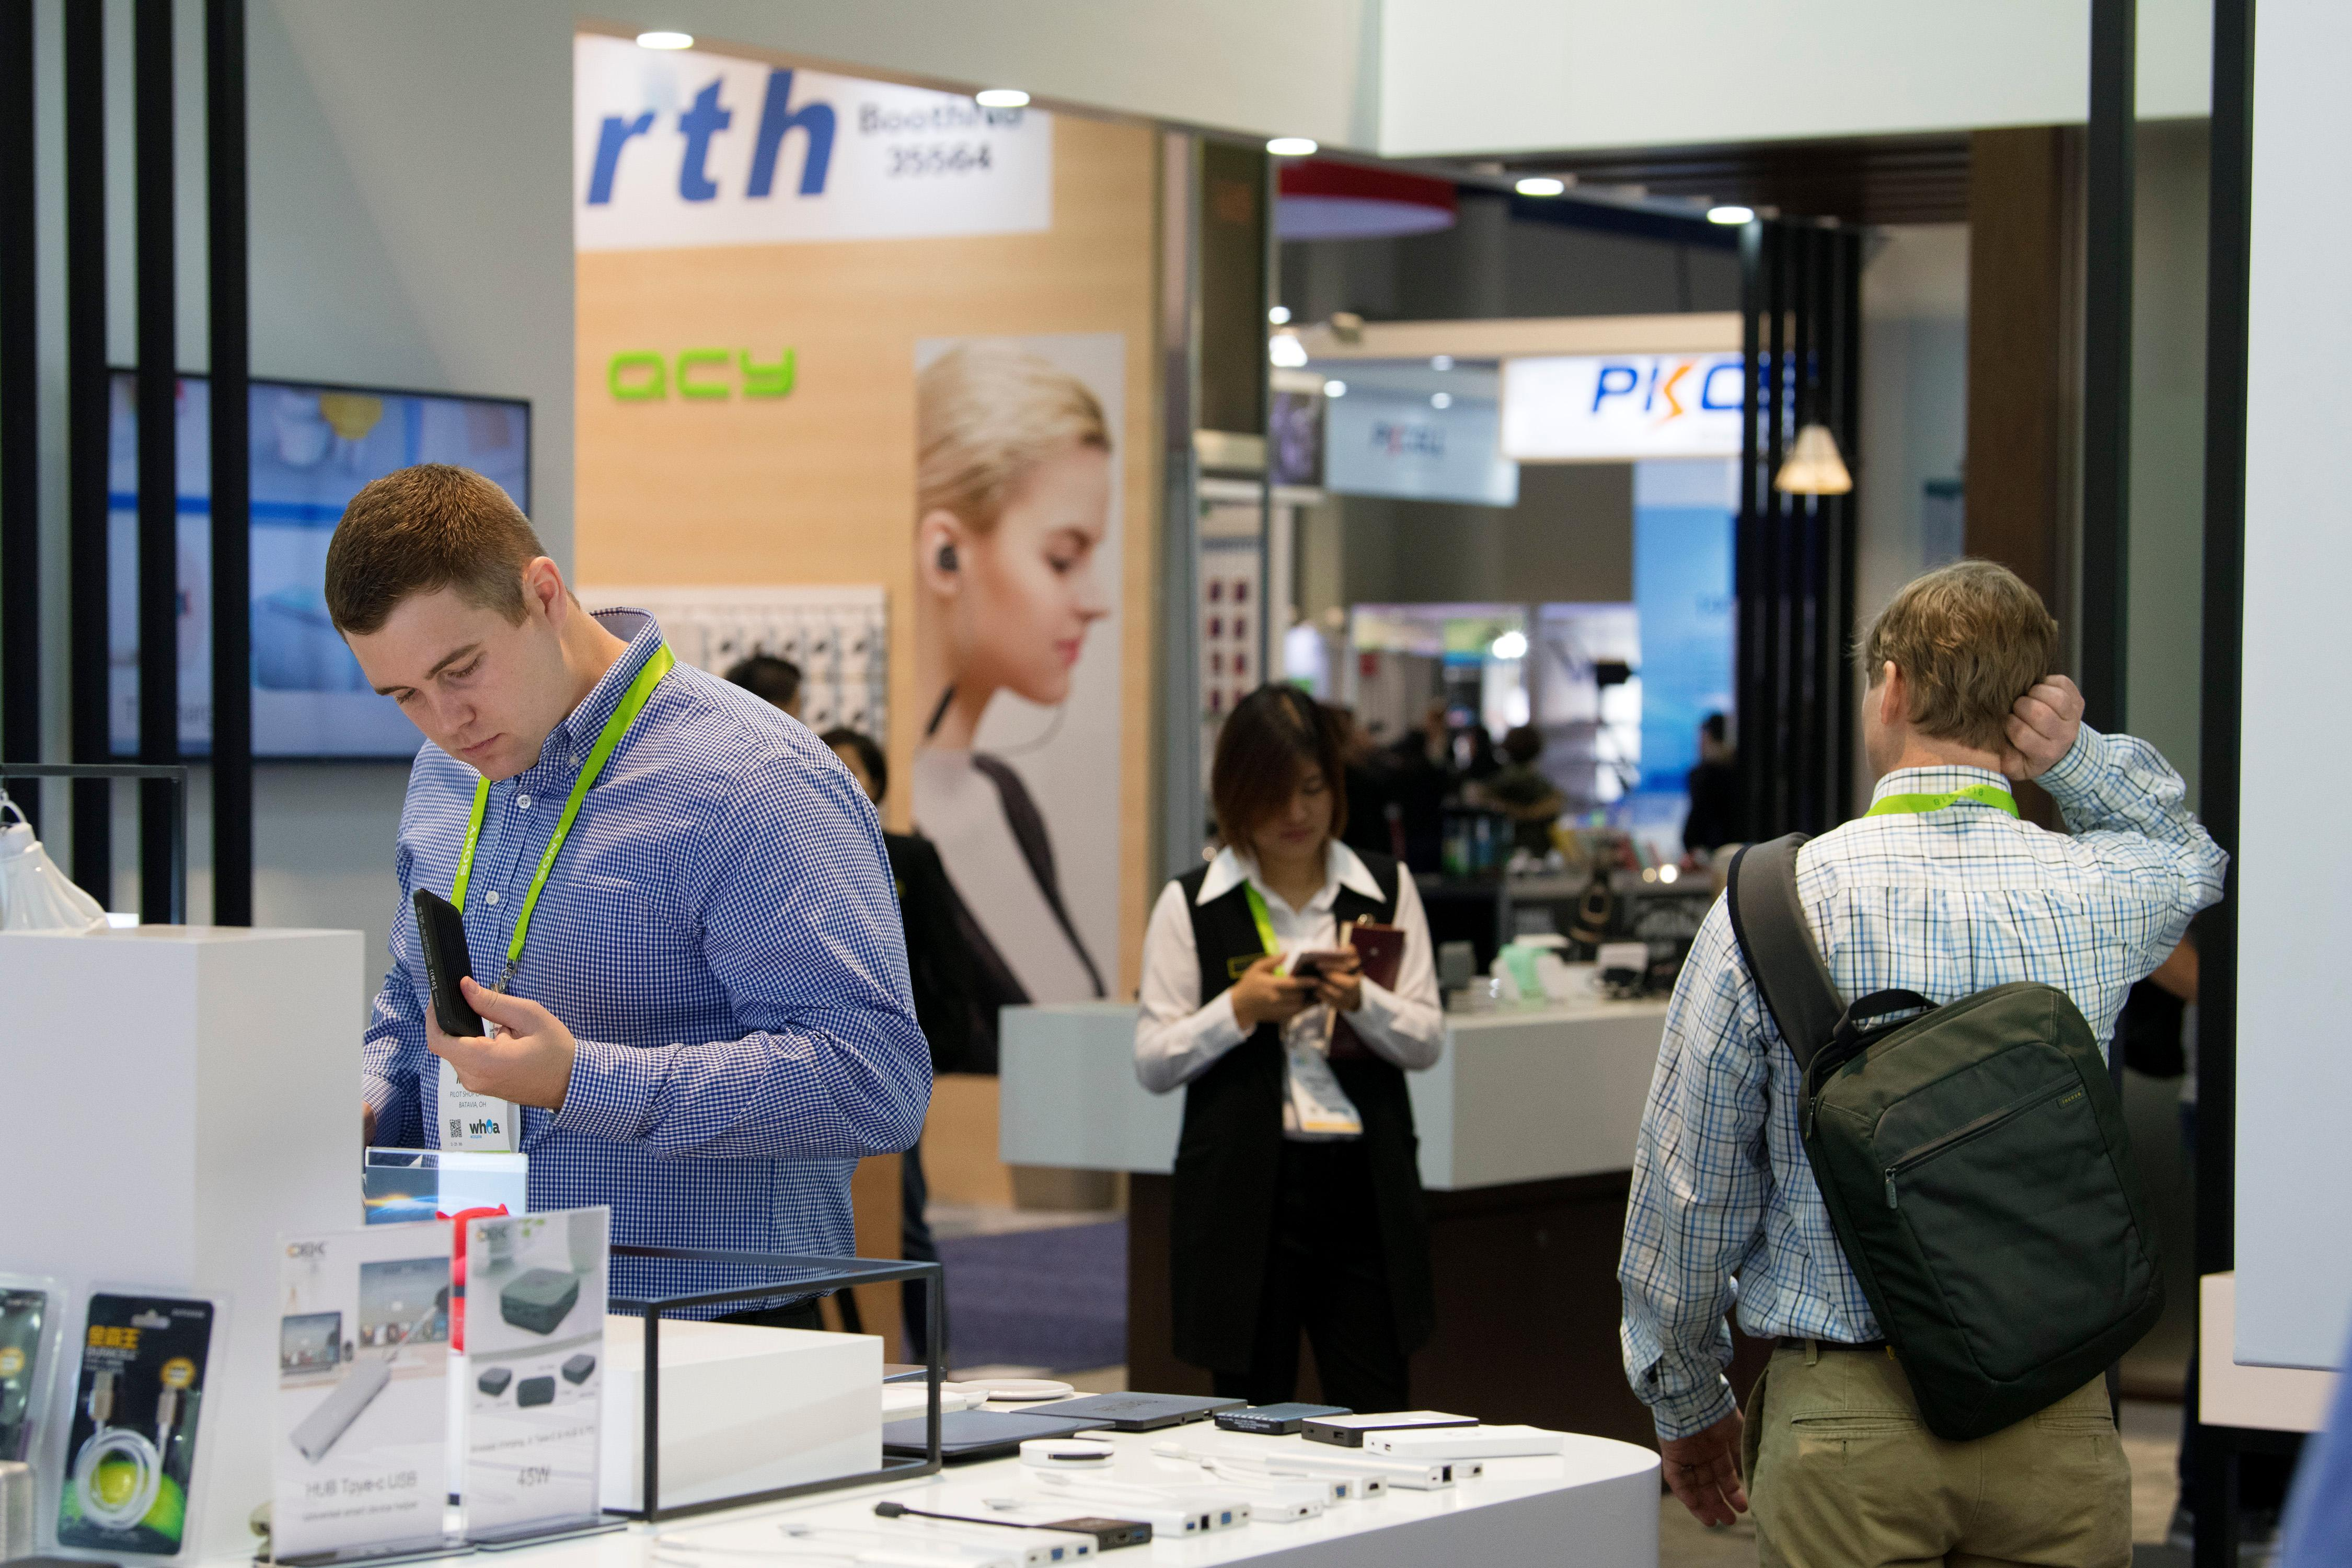 Attendees browse during the second day of CES Wednesday, January 10, 2018, at the Las Vegas Convention Center. CREDIT: Sam Morris/Las Vegas News Bureau